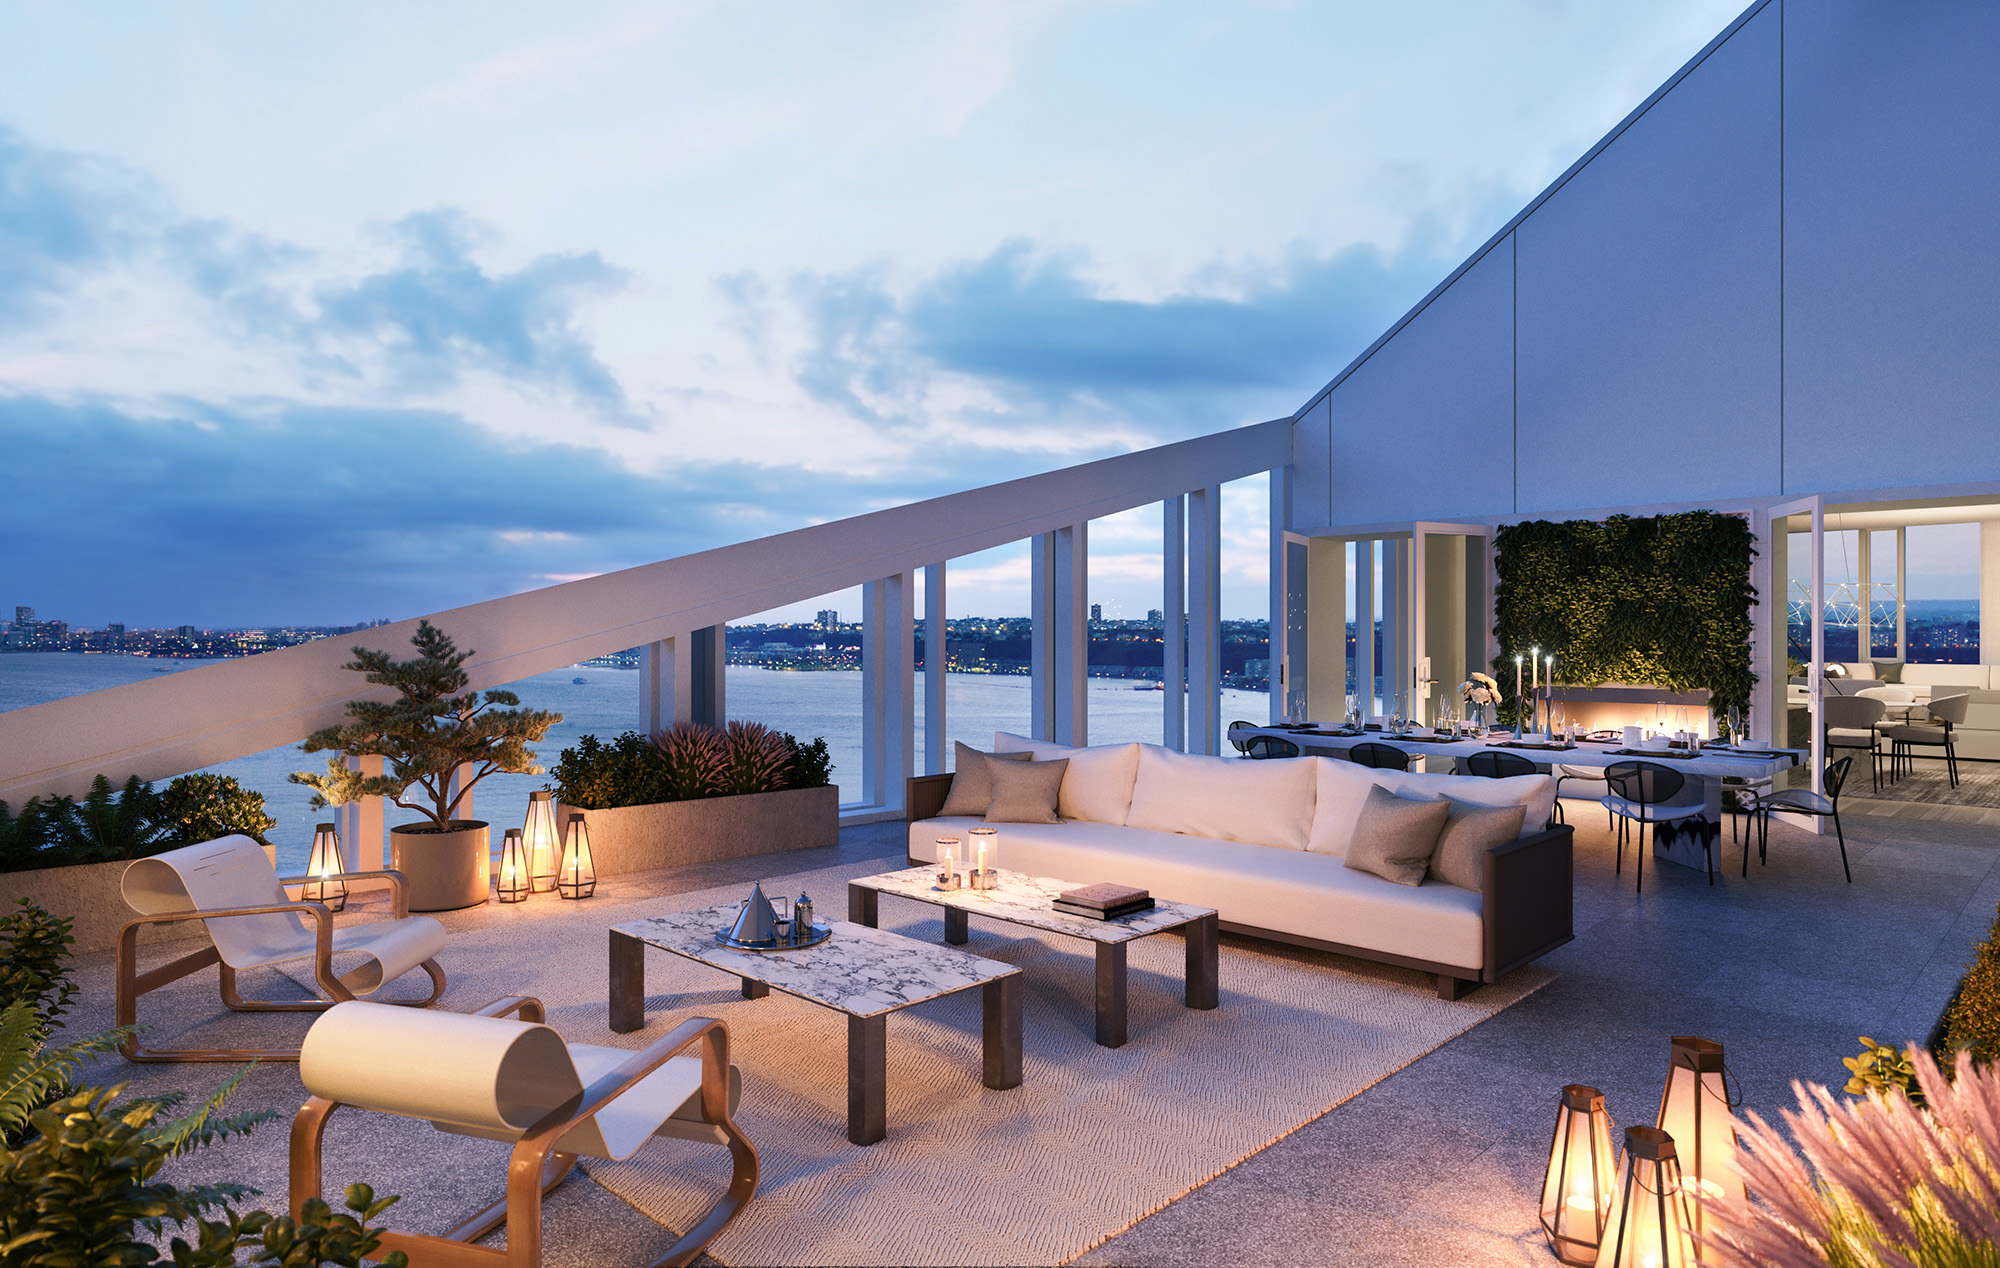 One Waterline Square Penthouse Terrace with Views of New York City Skyline